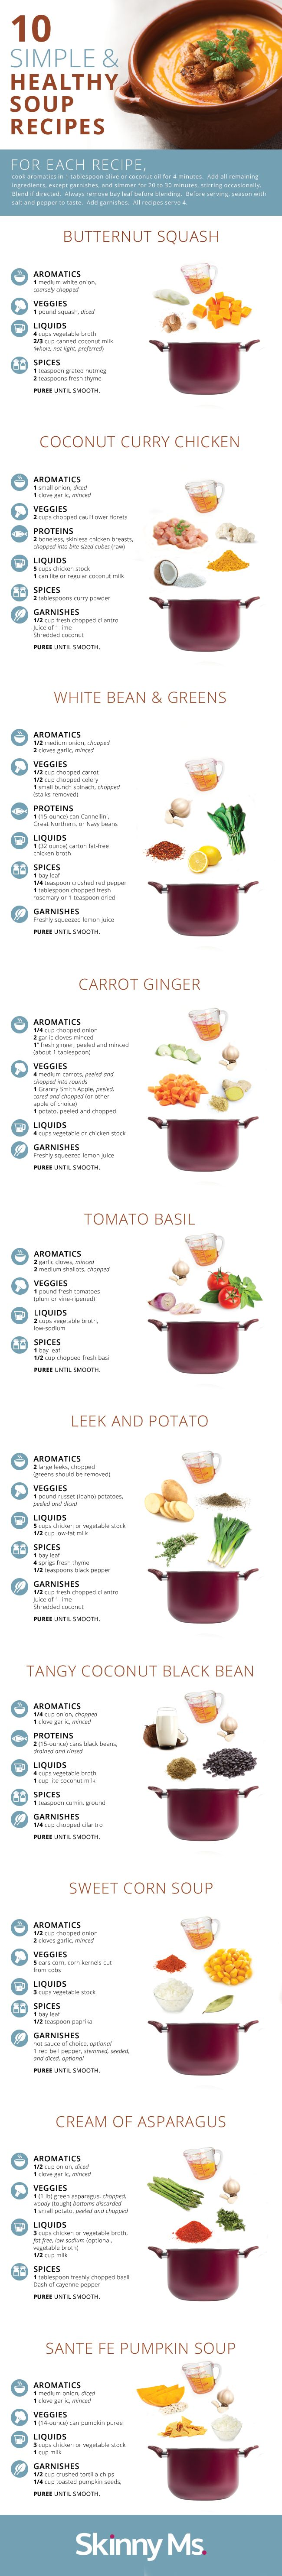 10-Simple-&-Healthy-Soup-Recipes_Final